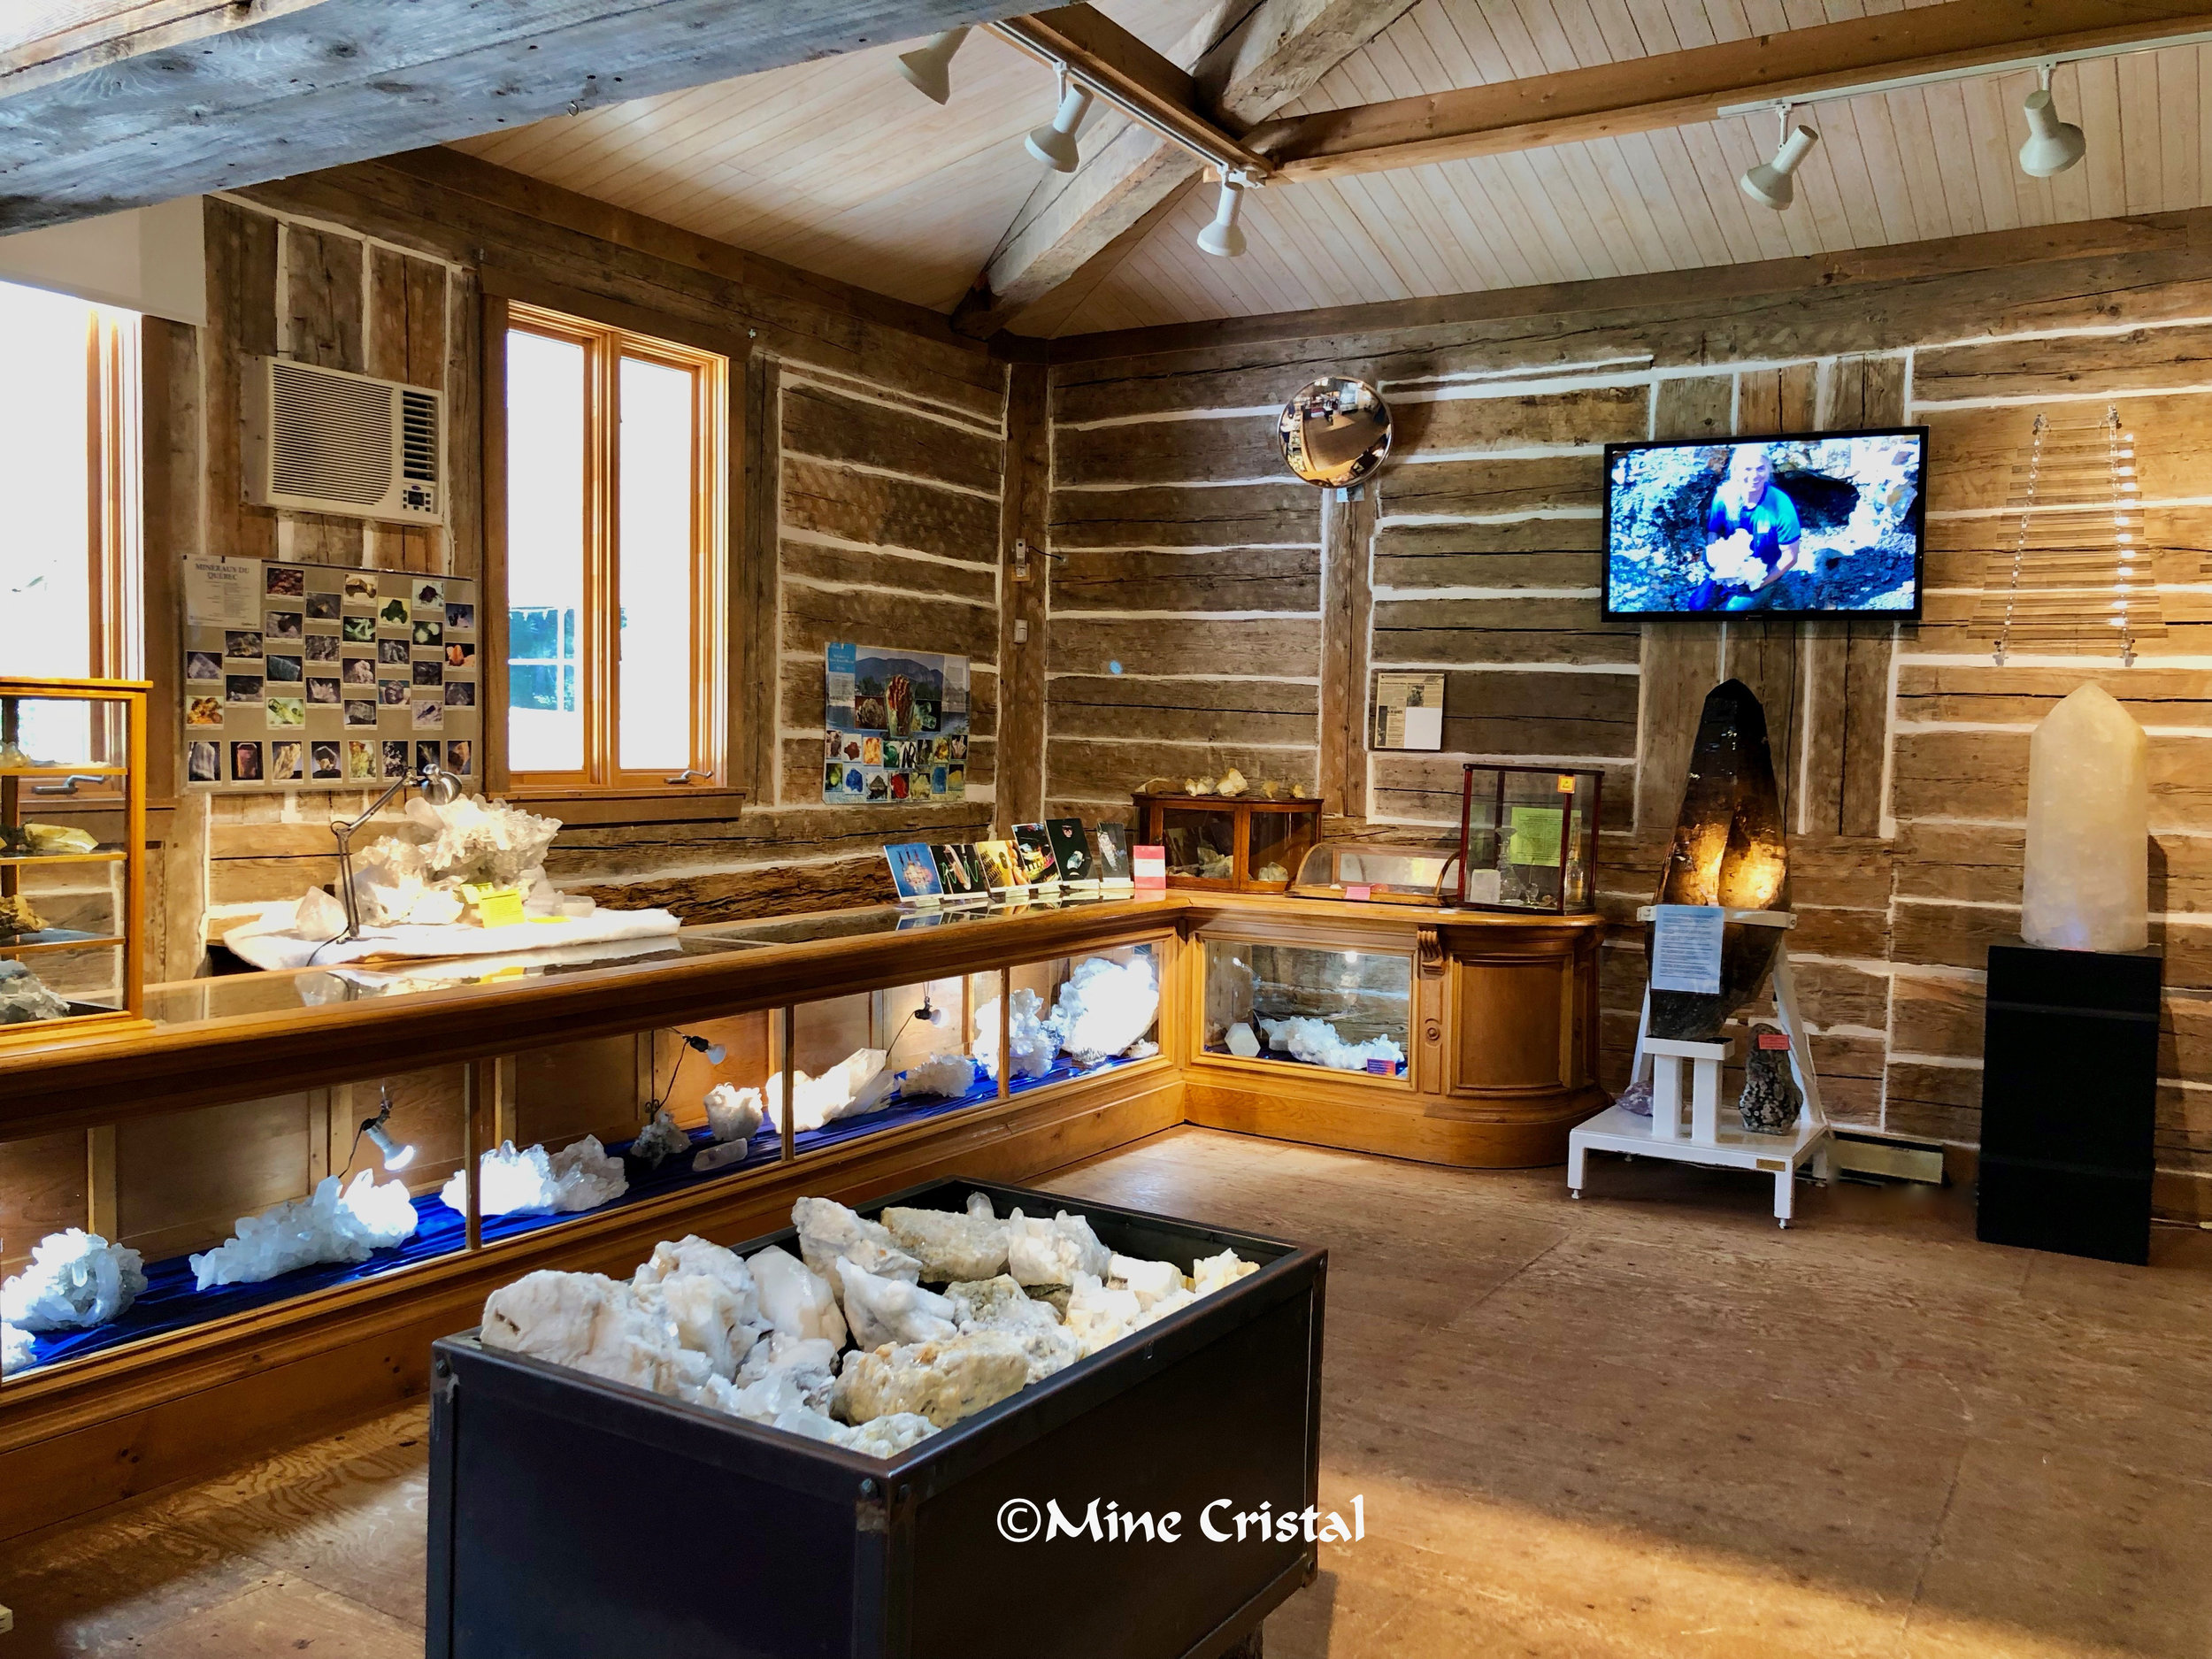 During crystal events you can visit the museum, where you will find beautiful crystals from our mine, extraordinary crystals from other countries and lots of information about our mine, including a video of how we harvest the crystals without using dynamite, by hand!